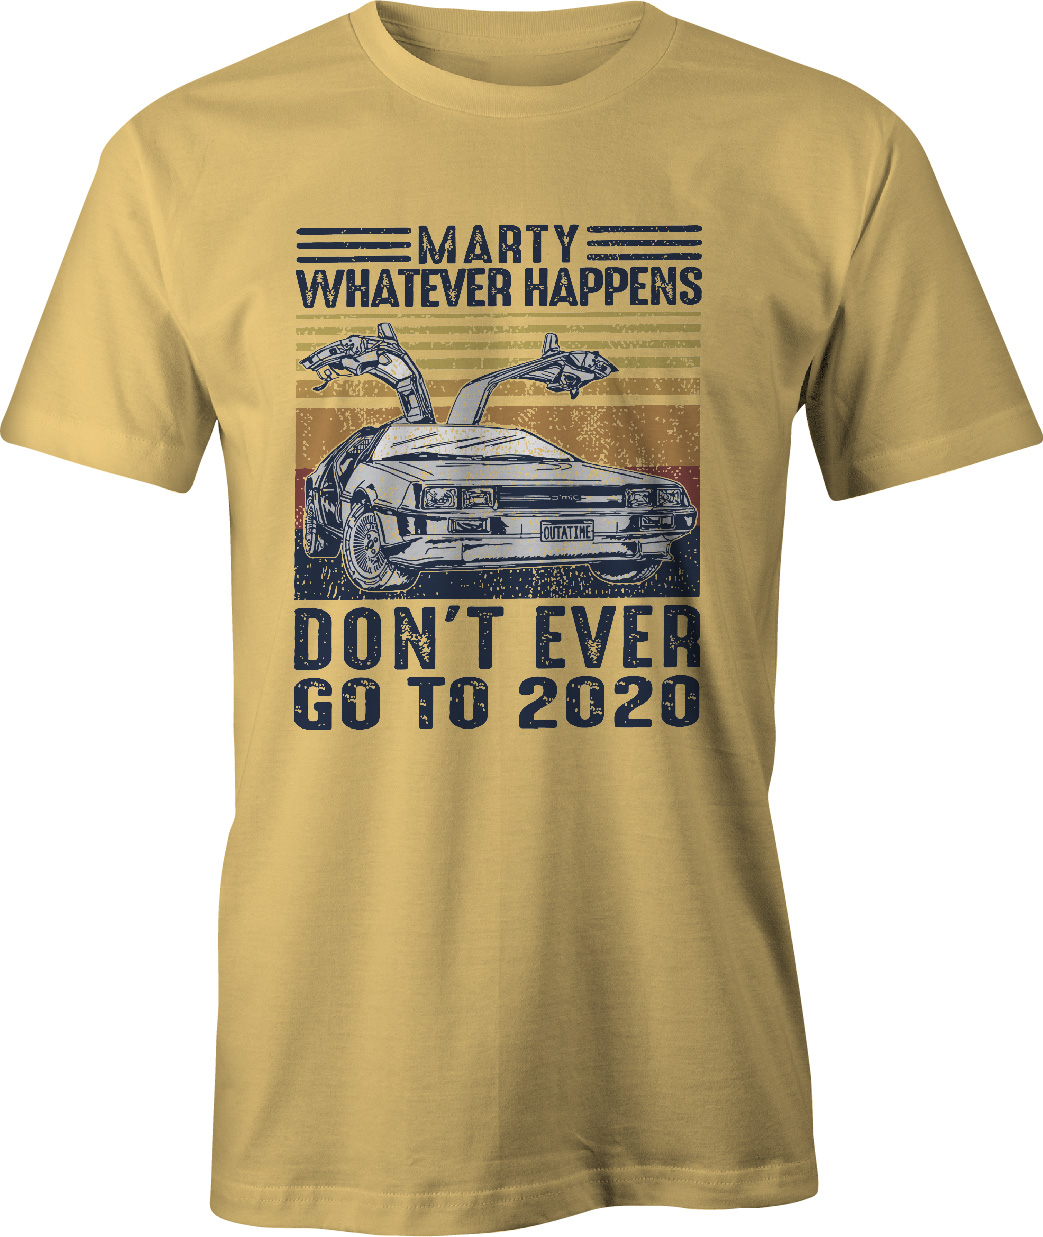 Back To The Future Don't Ever Go Back to 2021 T Shirt in yellow haze